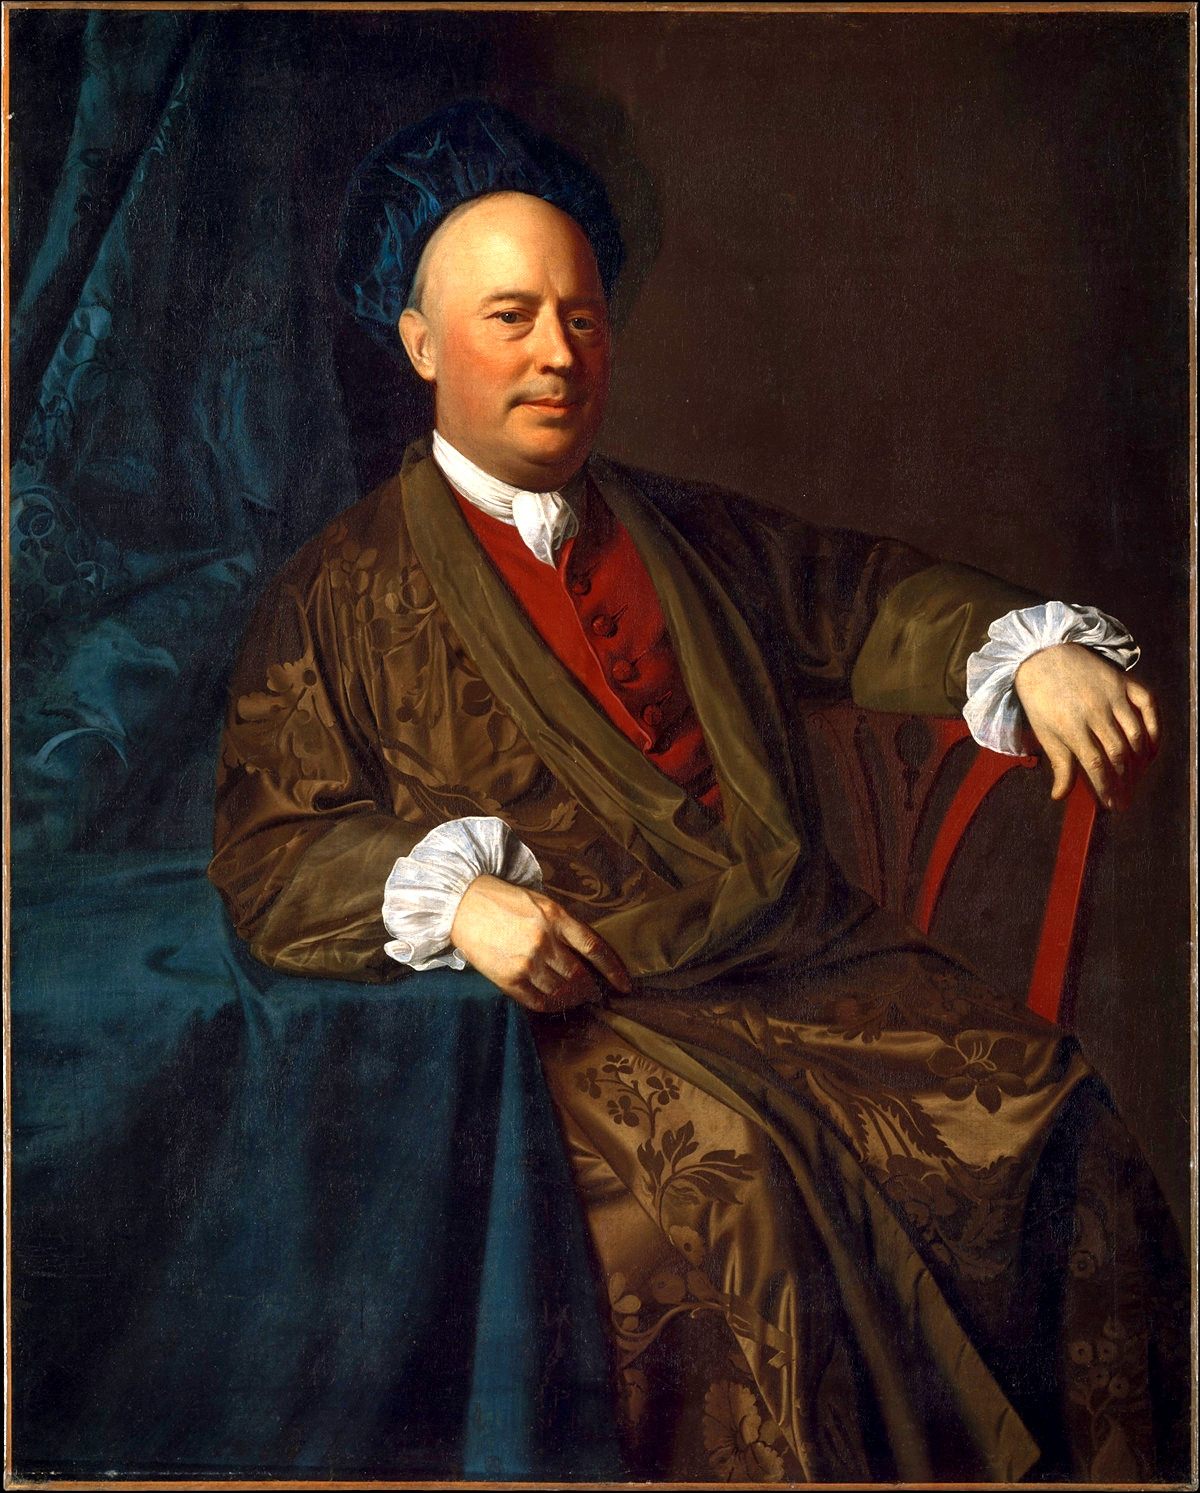 Joseph Sherburne (a wealthy Boston merchant wearing an elegant banyan) by John Singleton Copley, 1770